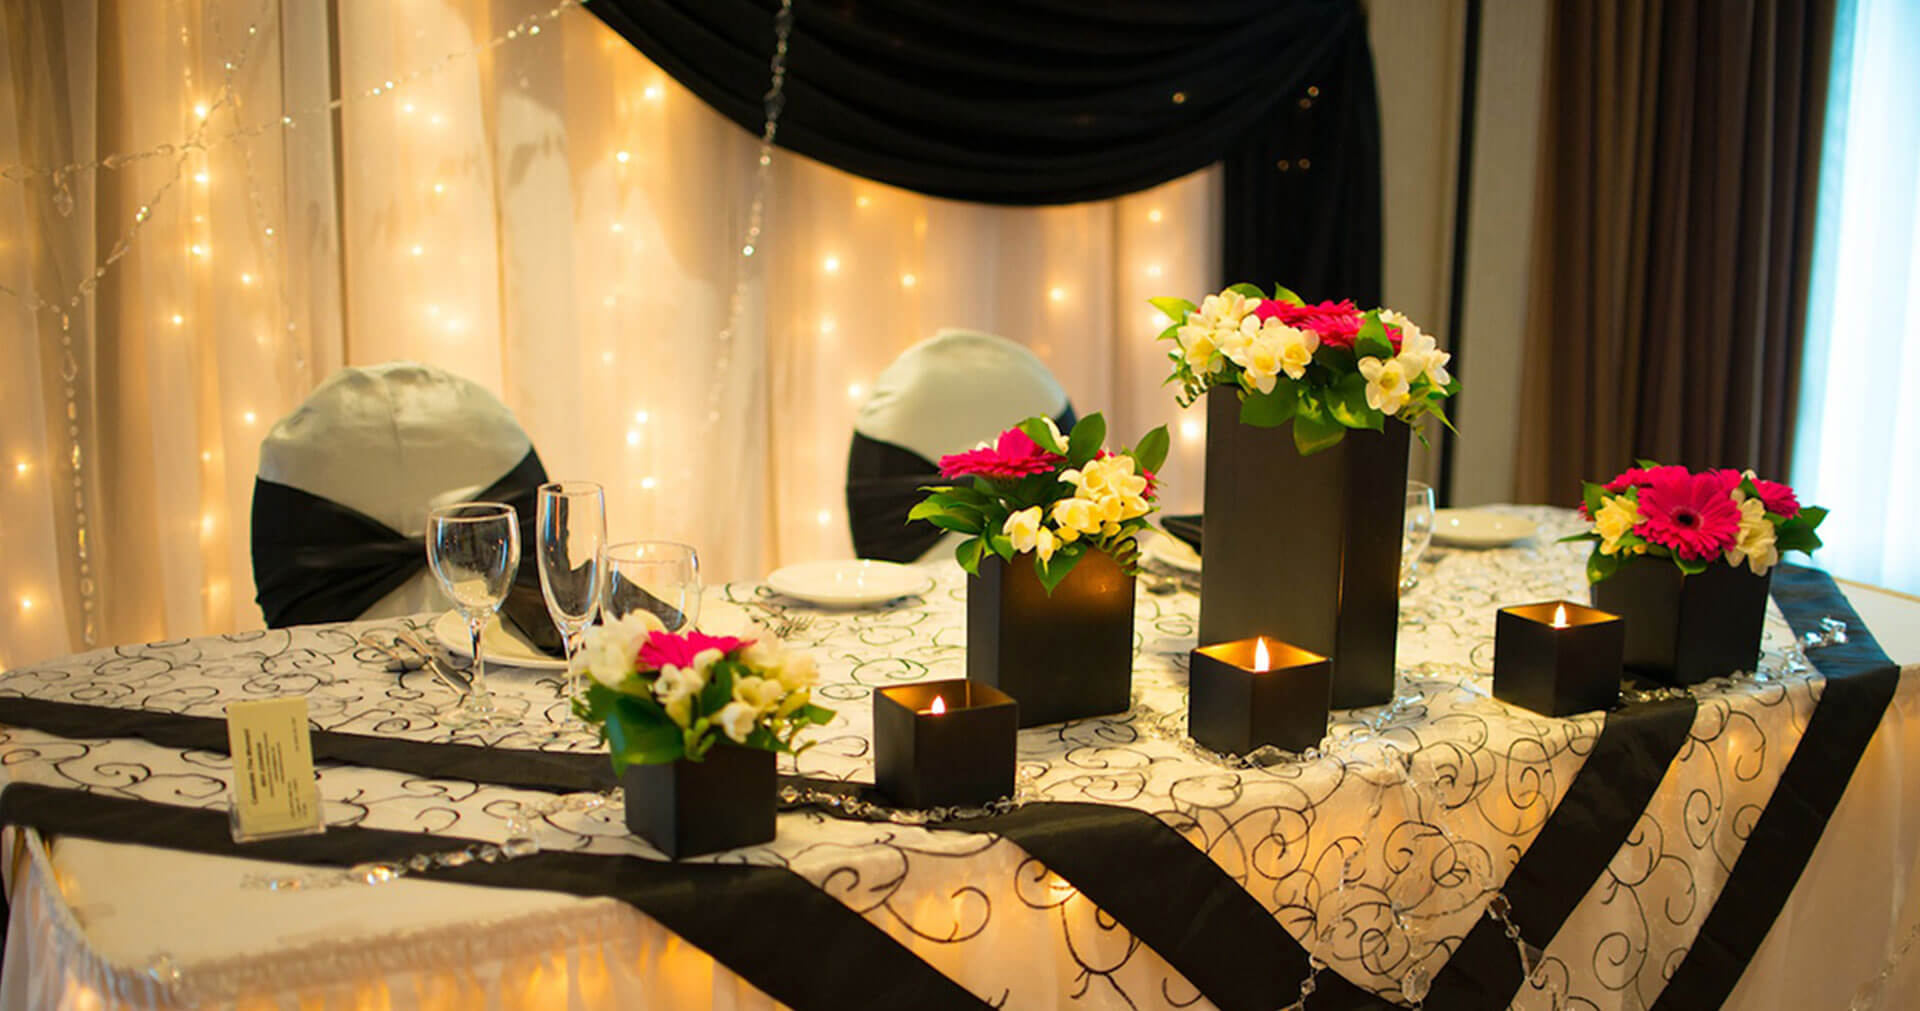 Dining table set in black and white theme with flowers and candles